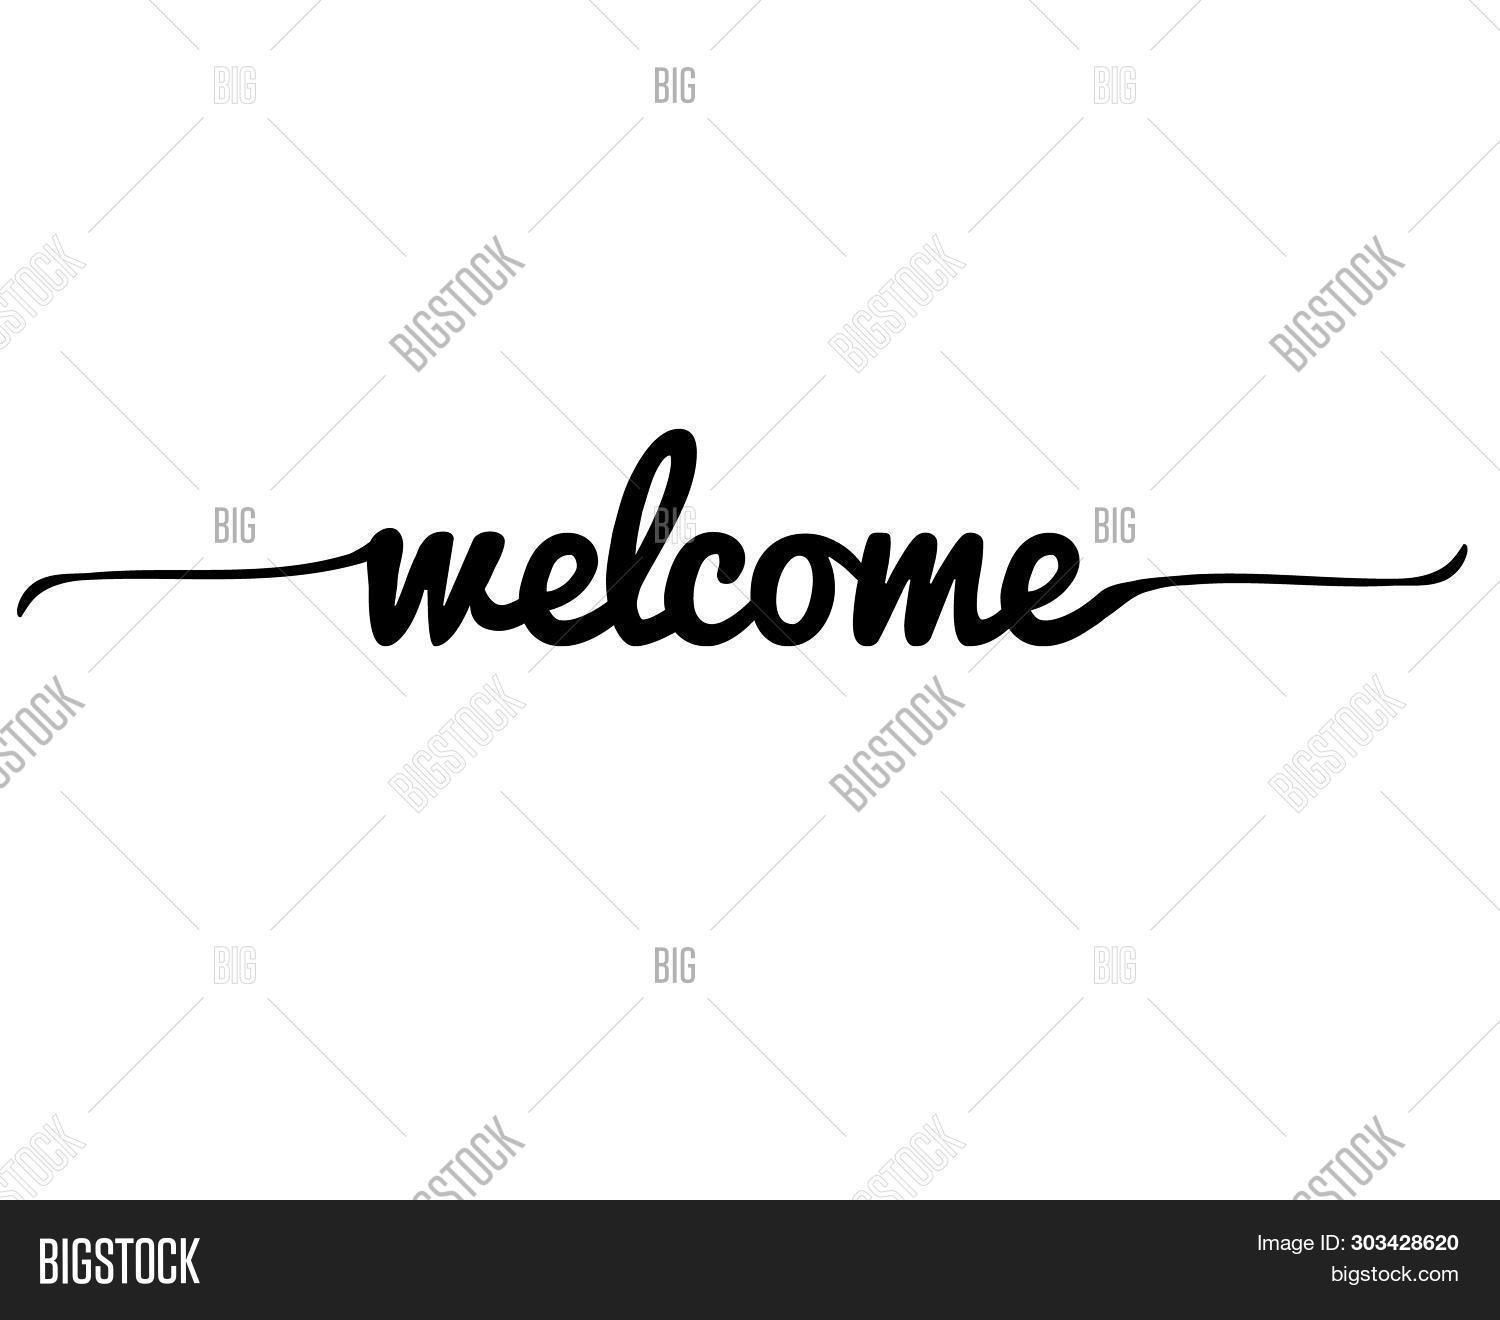 art,back,background,banner,black,brush,calligraphic,calligraphy,card,decoration,decorative,design,drawing,drawn,element,font,graphic,greeting,hand,handwriting,handwritten,headline,hello,home,illustration,invitation,invite,isolated,label,letter,lettering,march,phrase,poster,print,retro,script,sign,style,symbol,template,text,type,typographic,typography,wedding,welcome,white,word